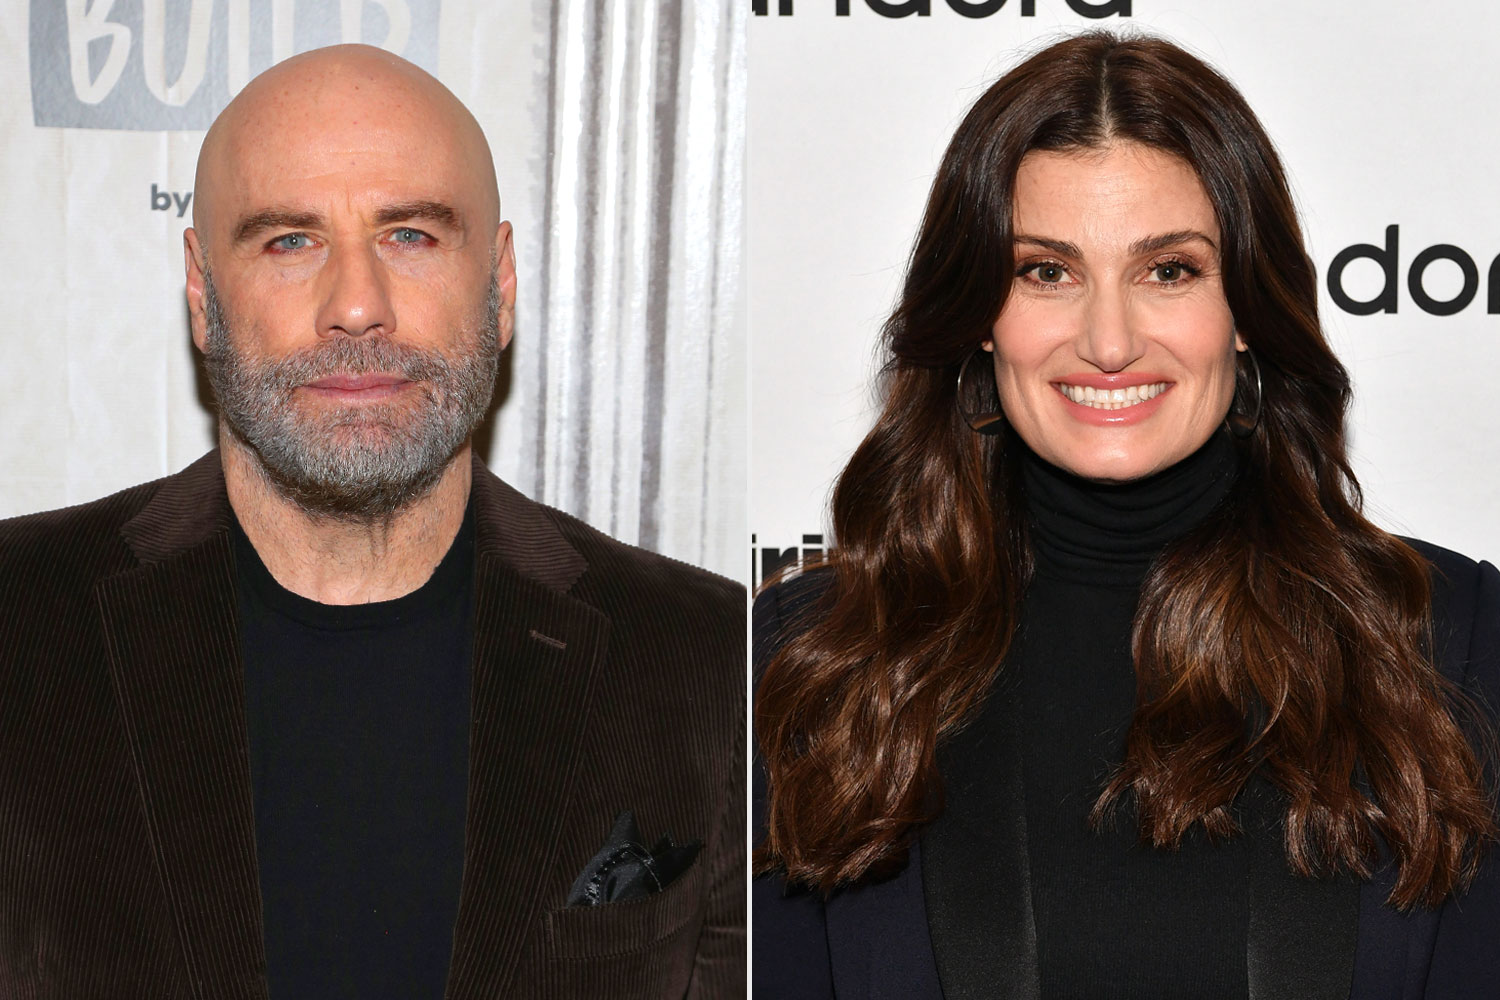 John Travolta and Idina Menzel